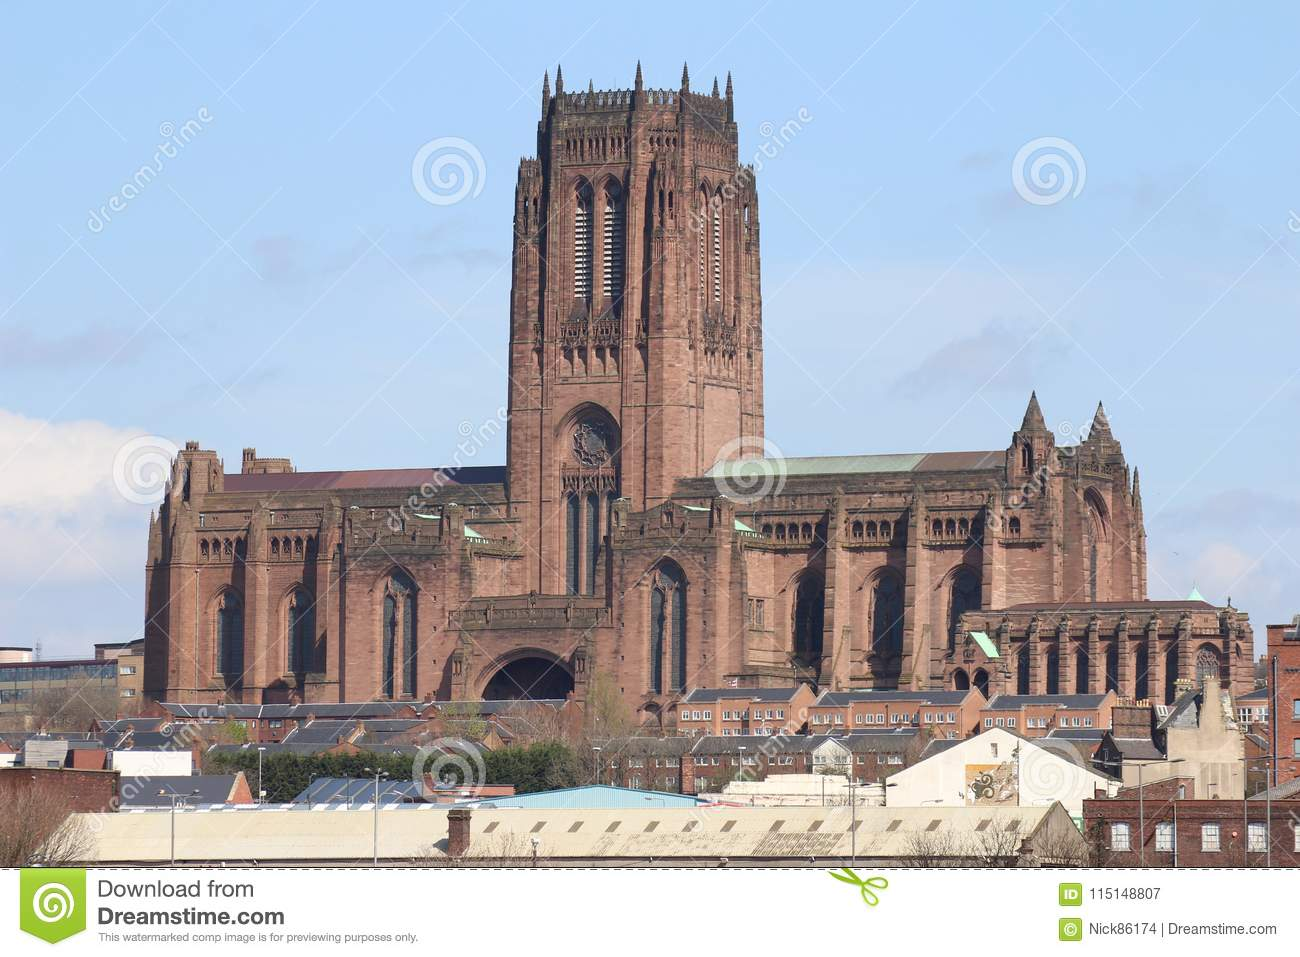 Shot showing the Anglican Cathedral in Liverpool